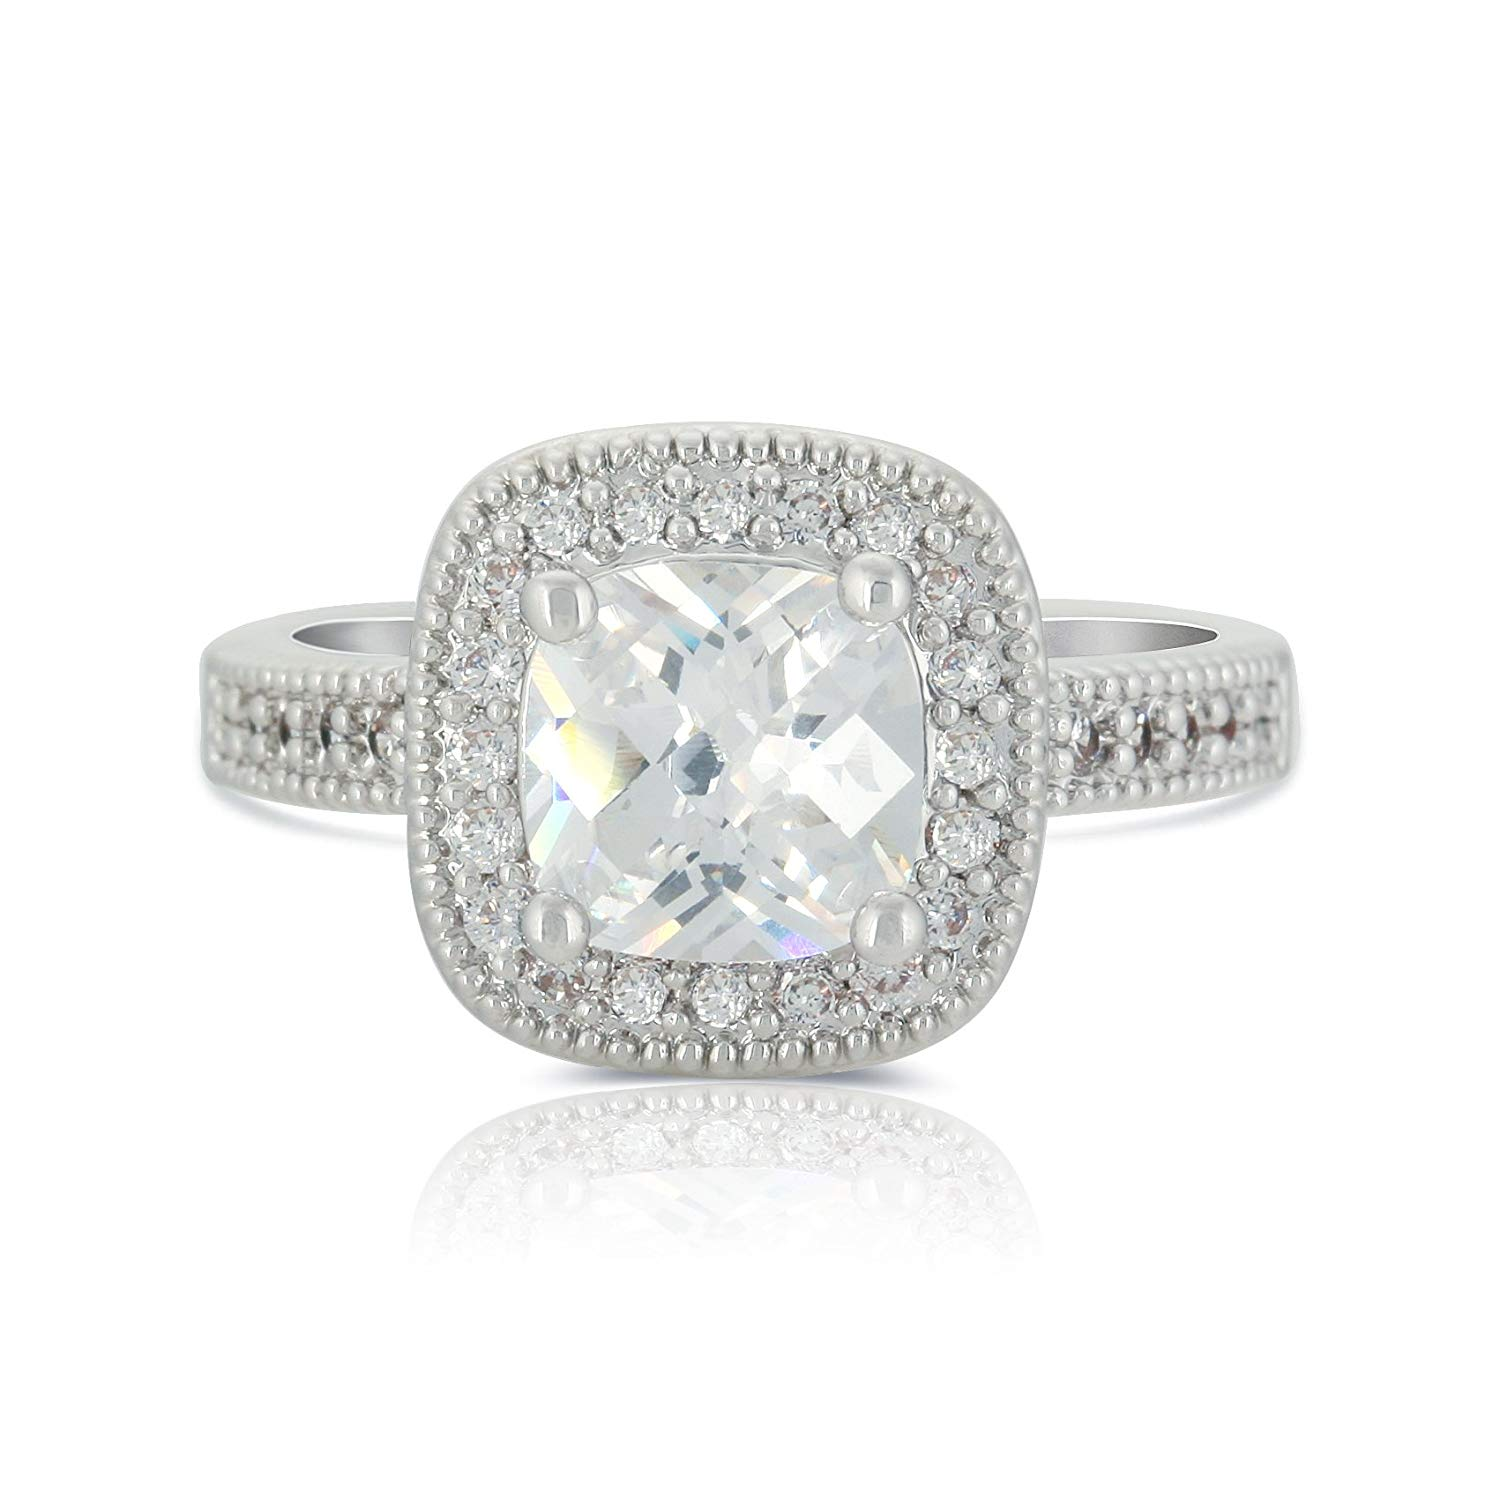 Get Quotations Jankuo Jewelry Rhodium Plated Cushion Cut Cubic Zirconia Halo Vintage Styles Bridal Wedding Engagement Ring